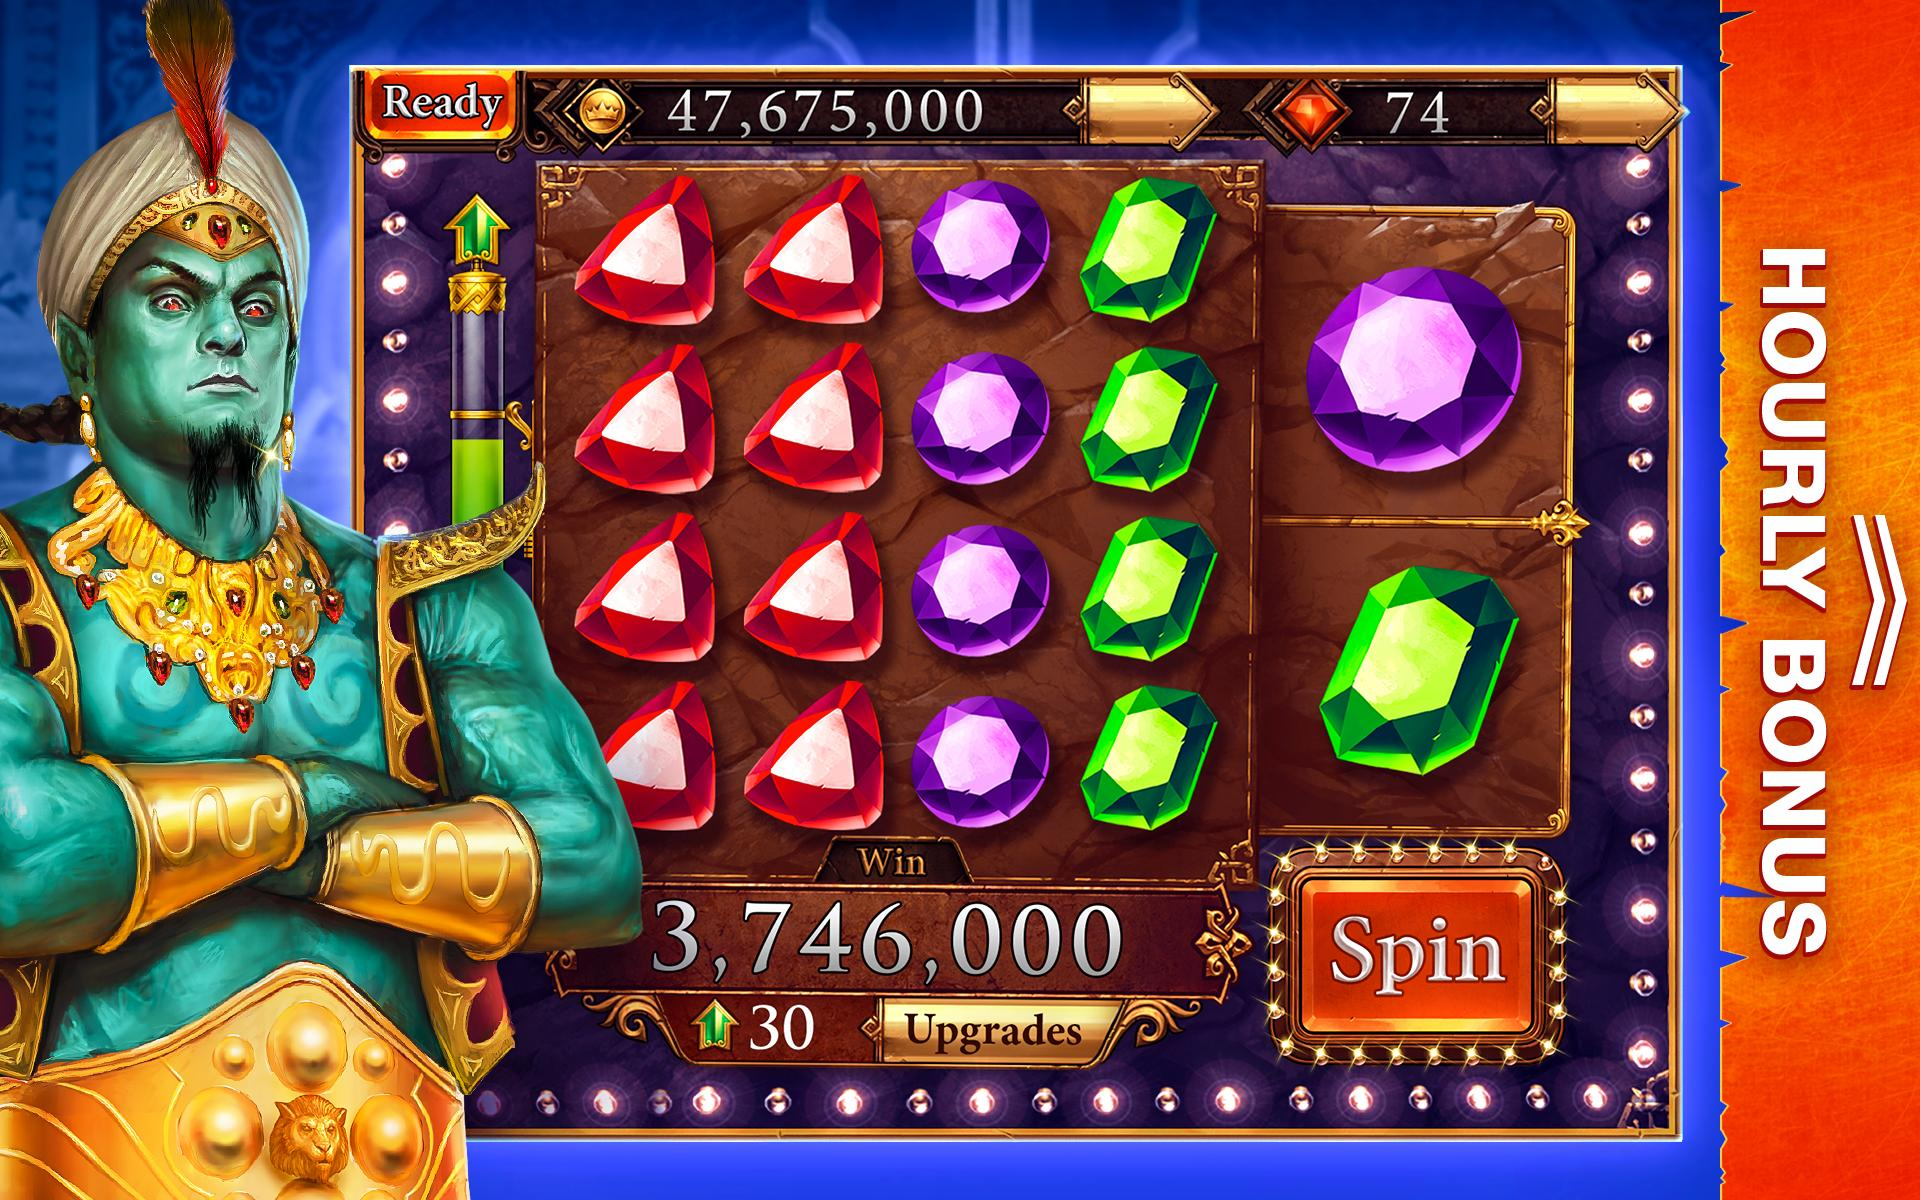 Play Scatter Slots